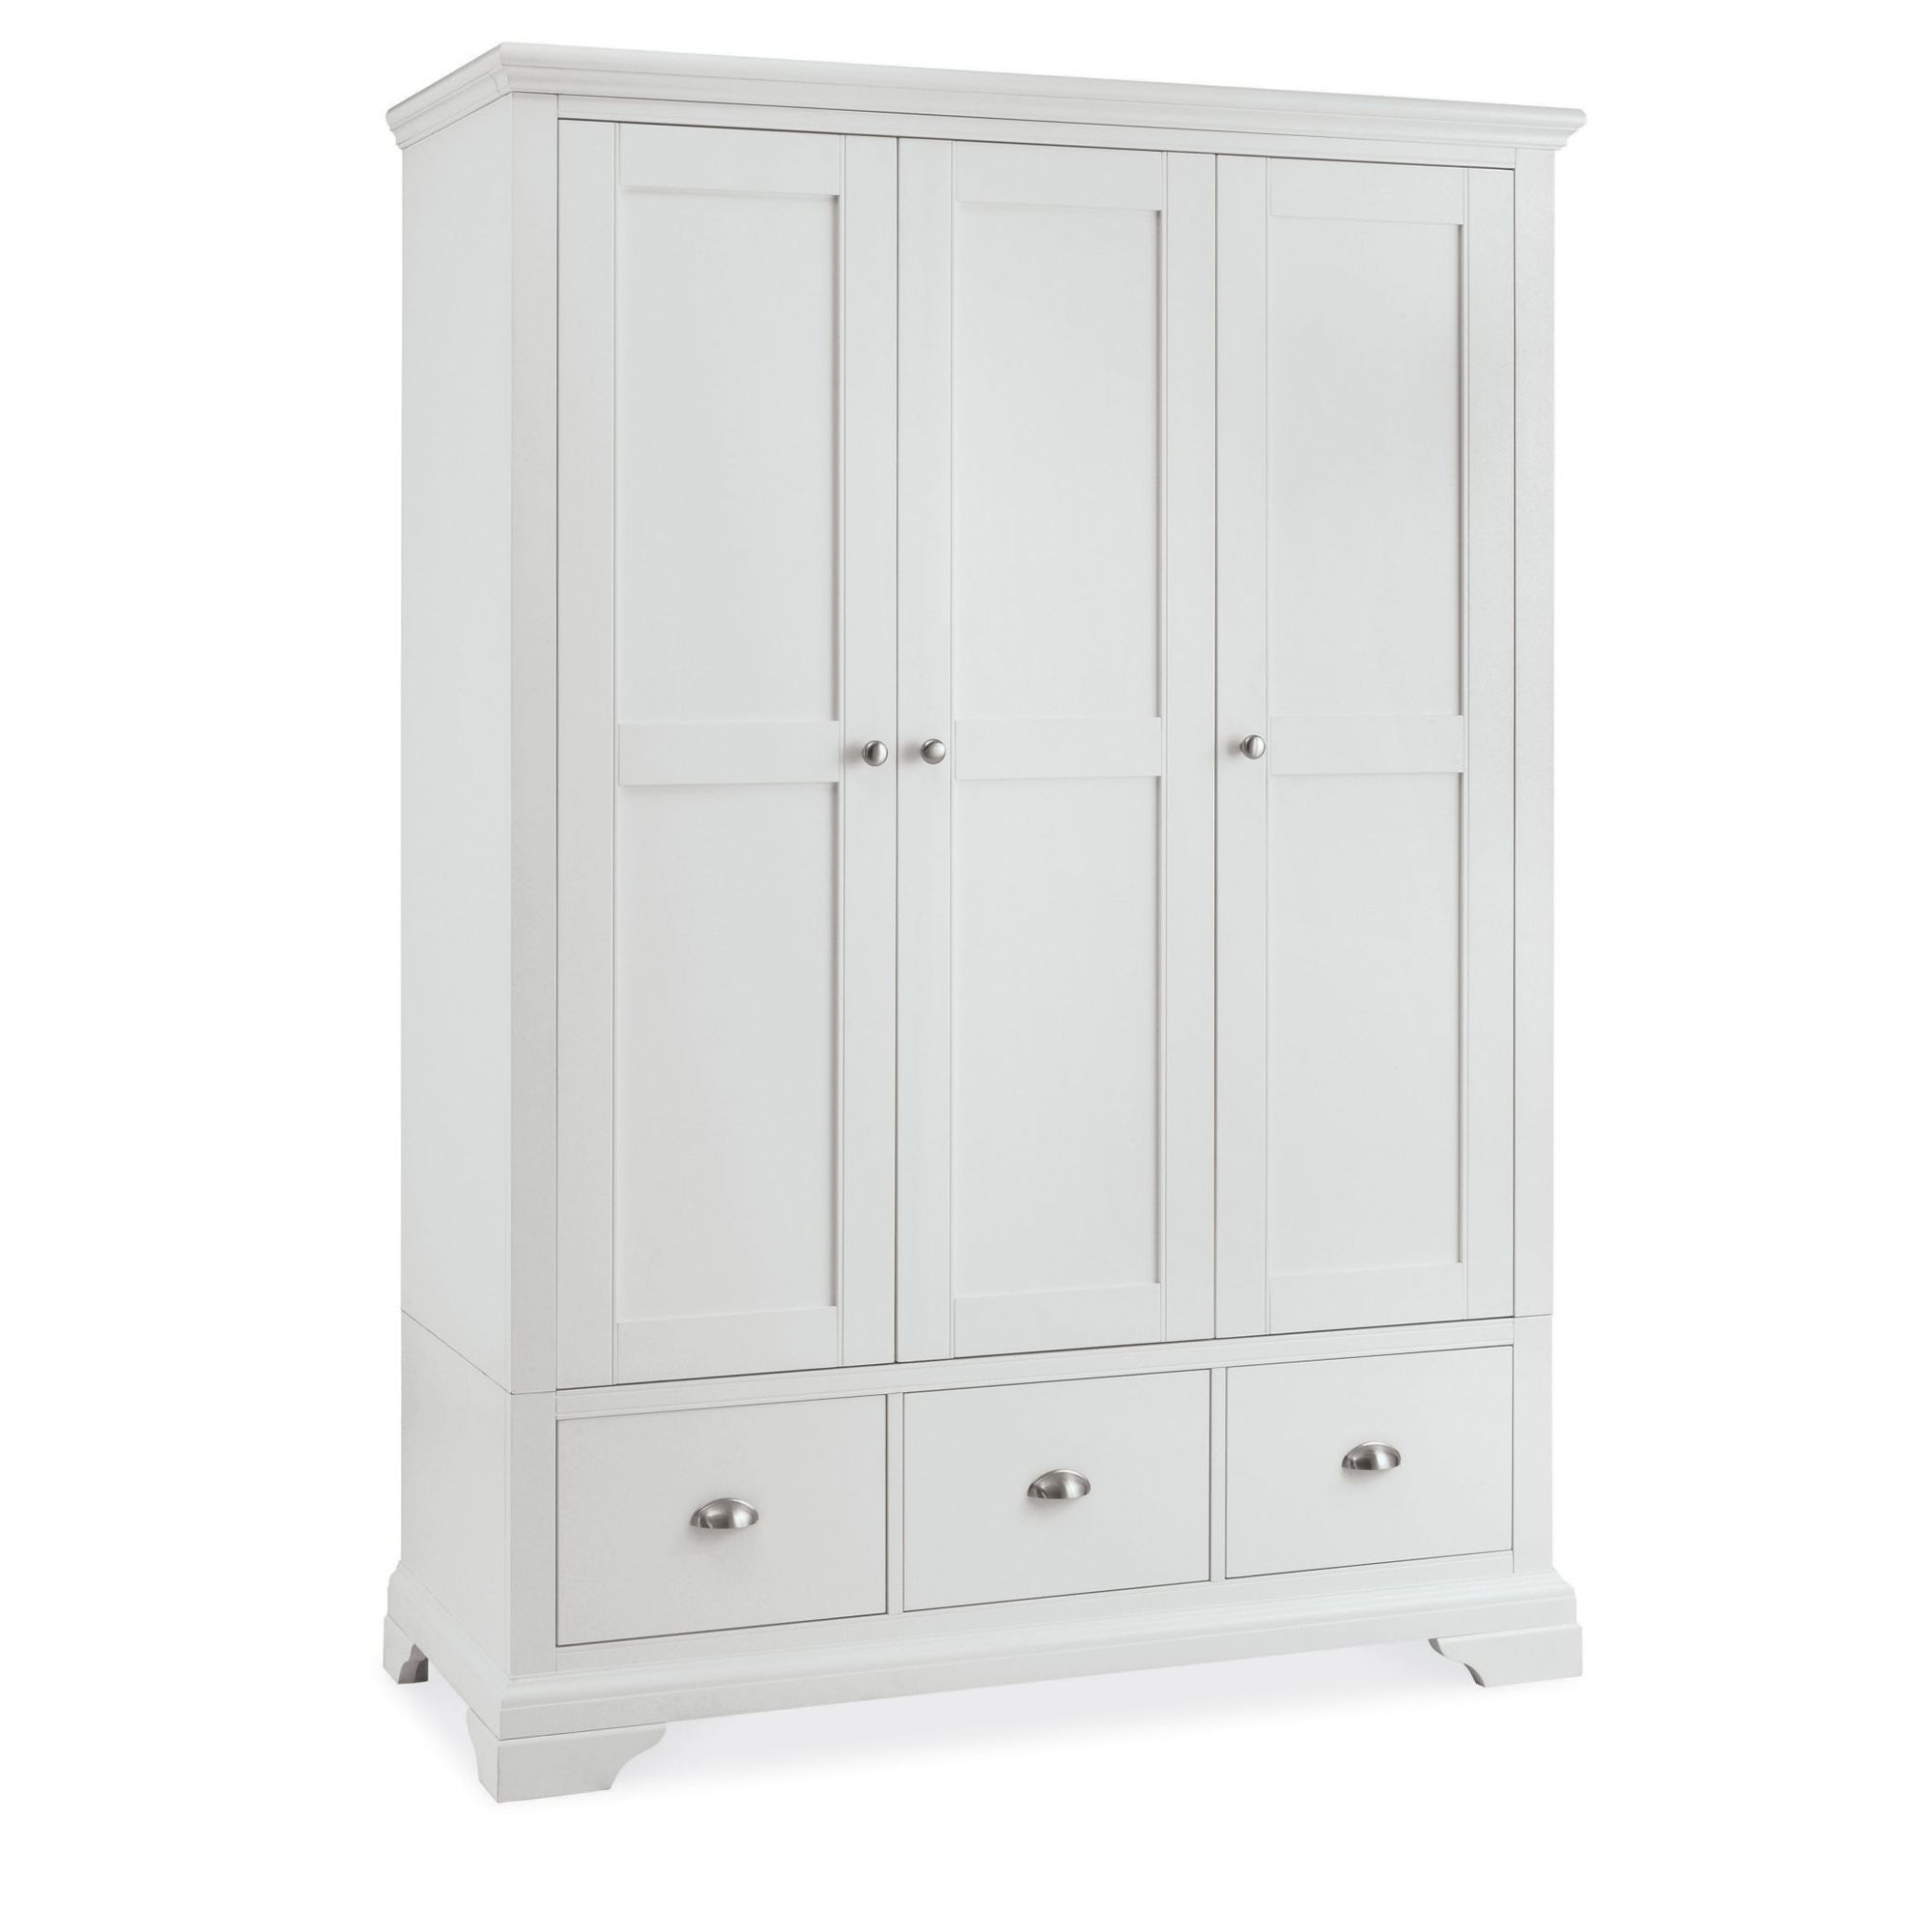 cookes collection camden white triple wardrobe - White Wardrobe